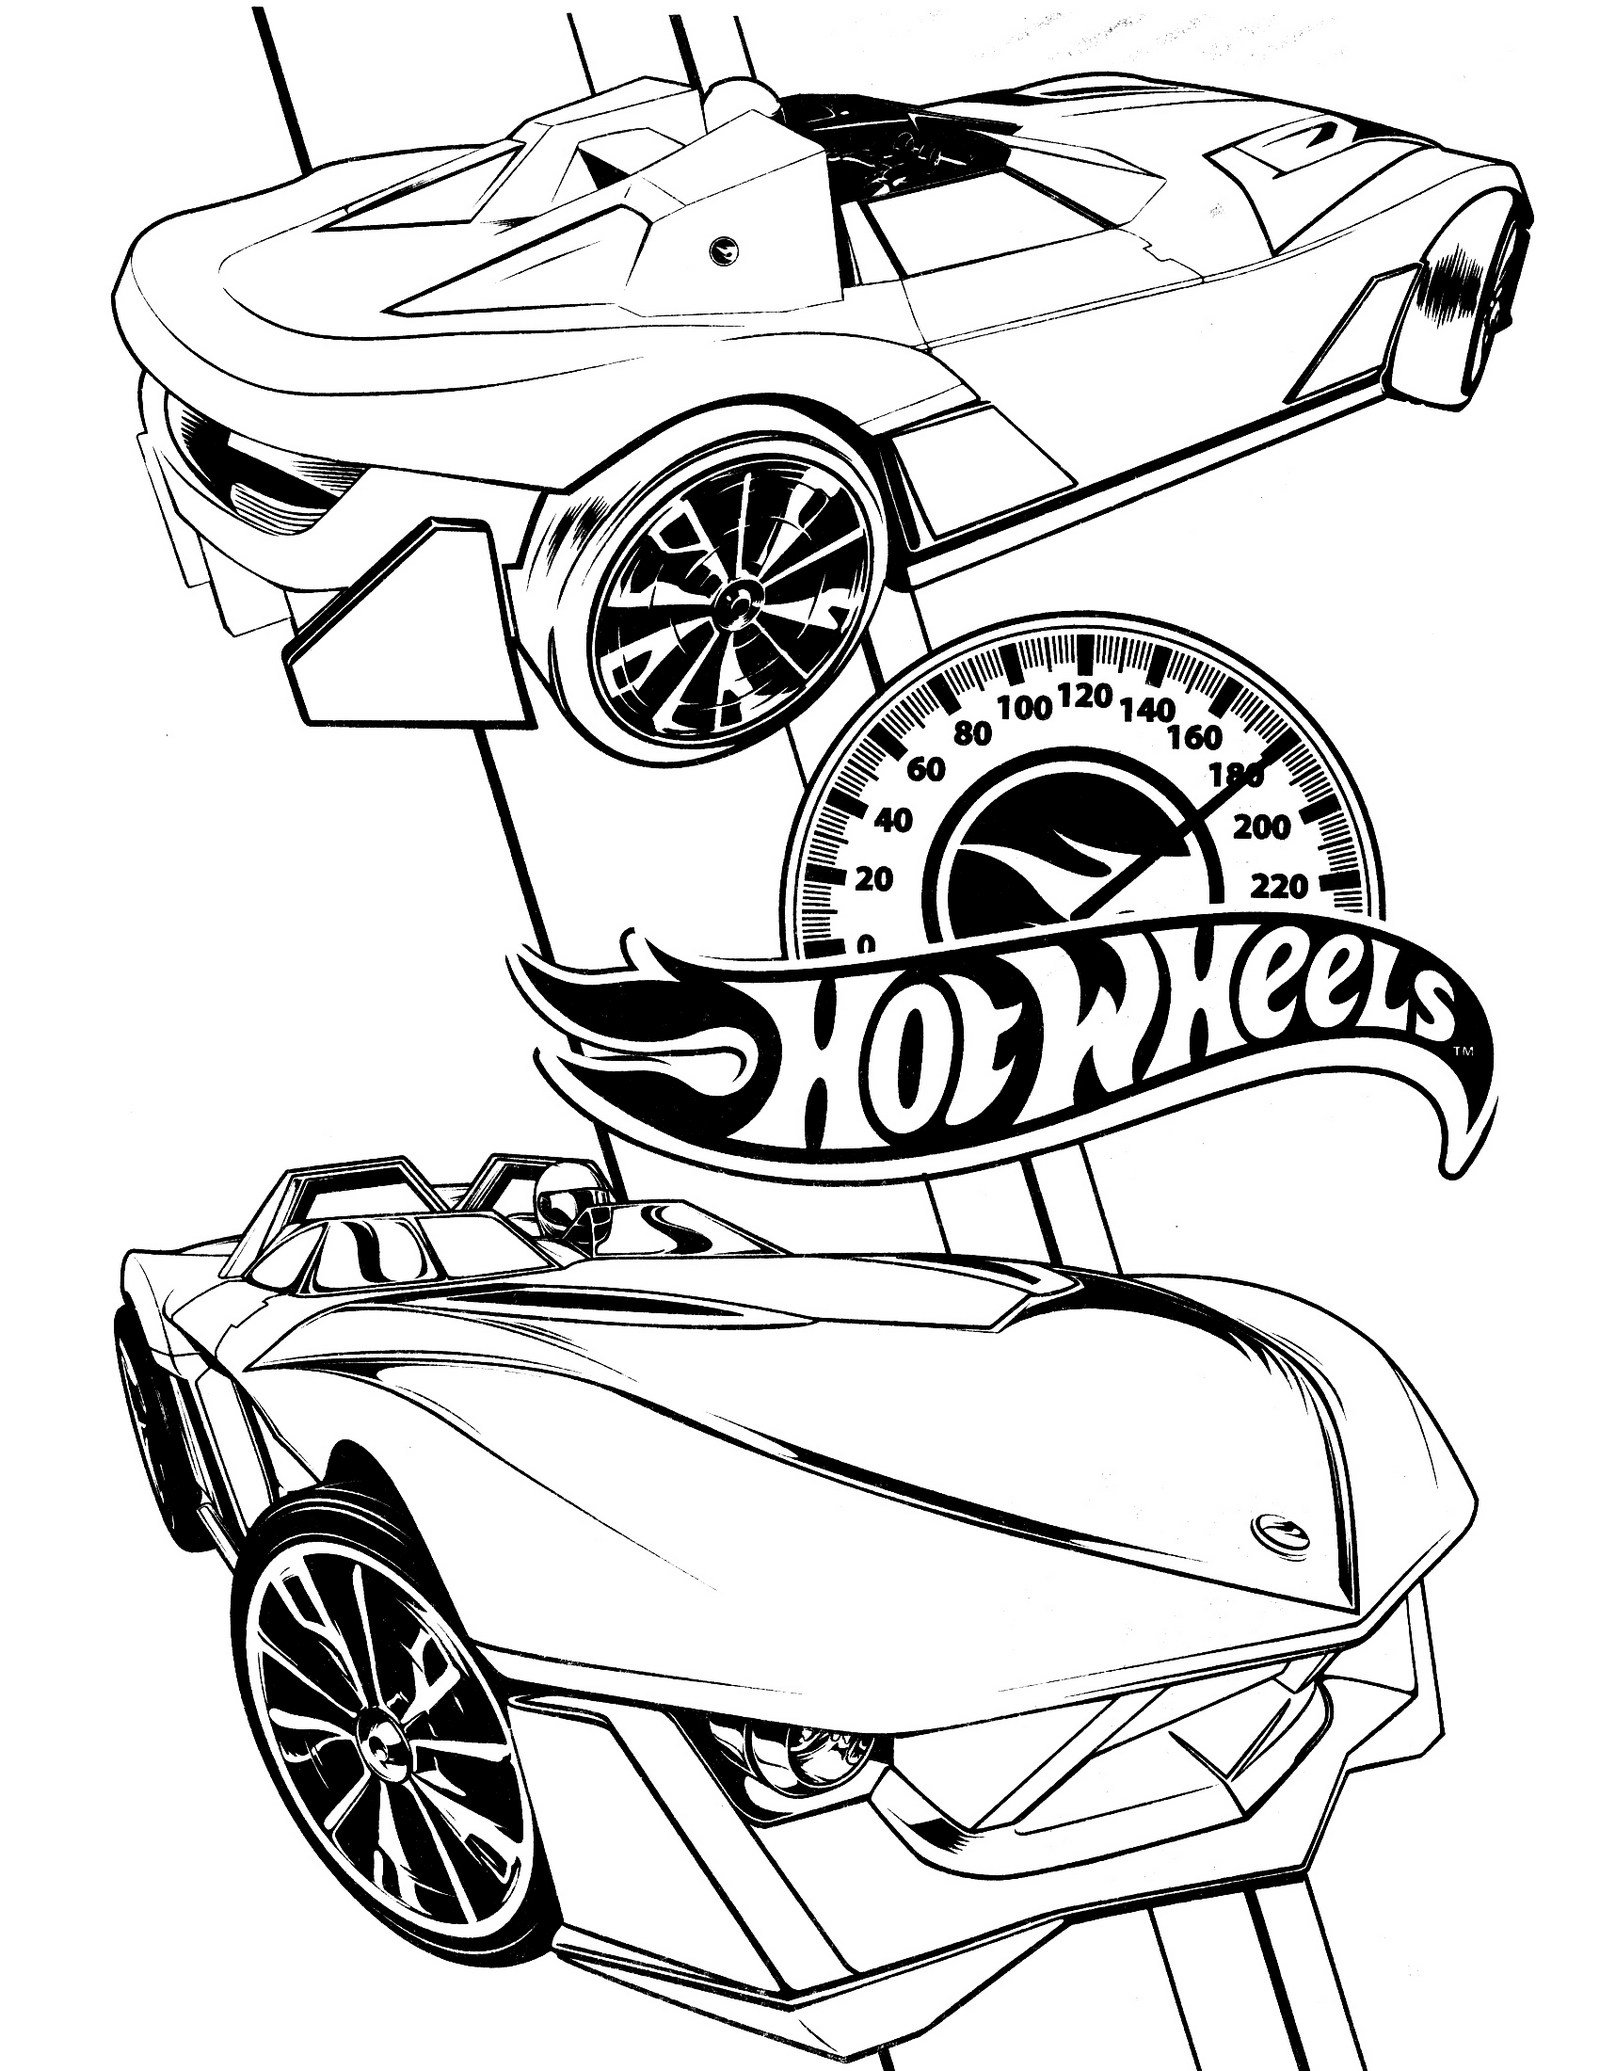 Latest Hot Wheels Bmw 5 Series Coloring Sheet Free Download